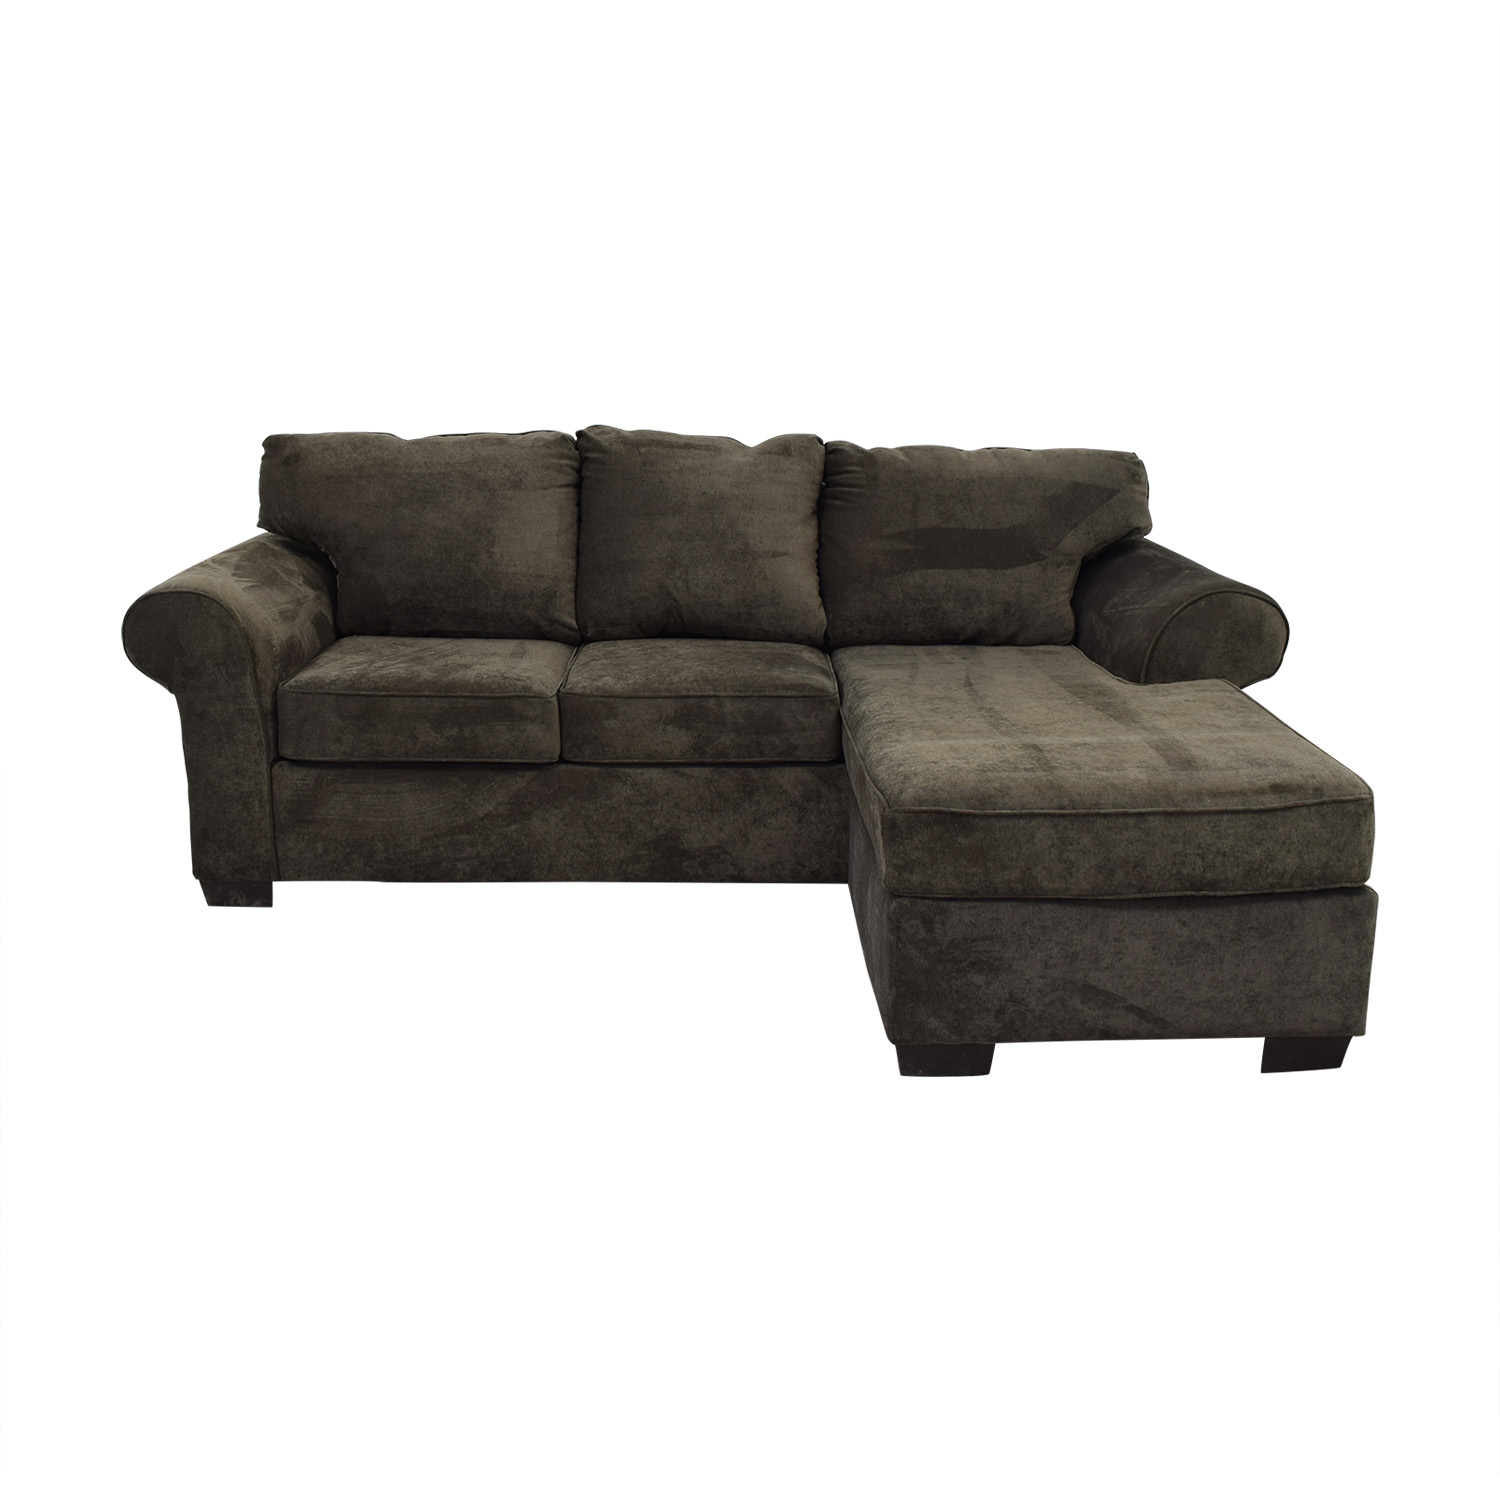 shop Raymour & Flanigan Grey Chaise Sectional Raymour & Flanigan Sofas